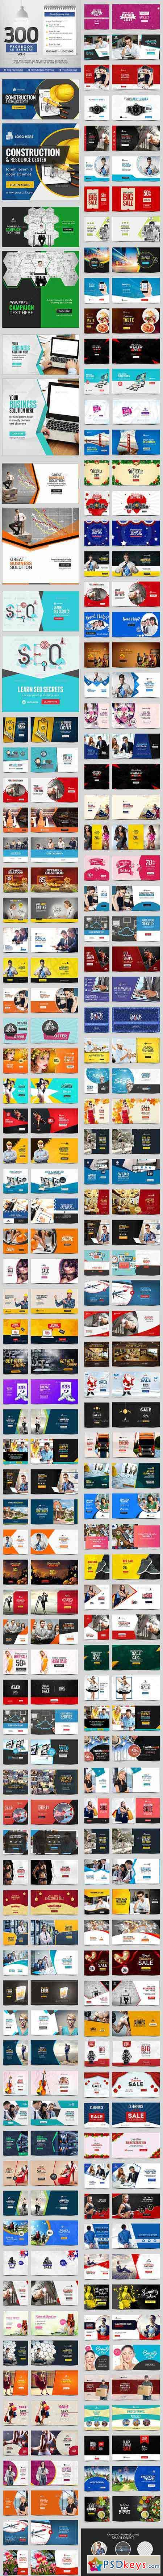 Facebook Newsfeed AD Banners Vol 8 - 150 Designs 20325499